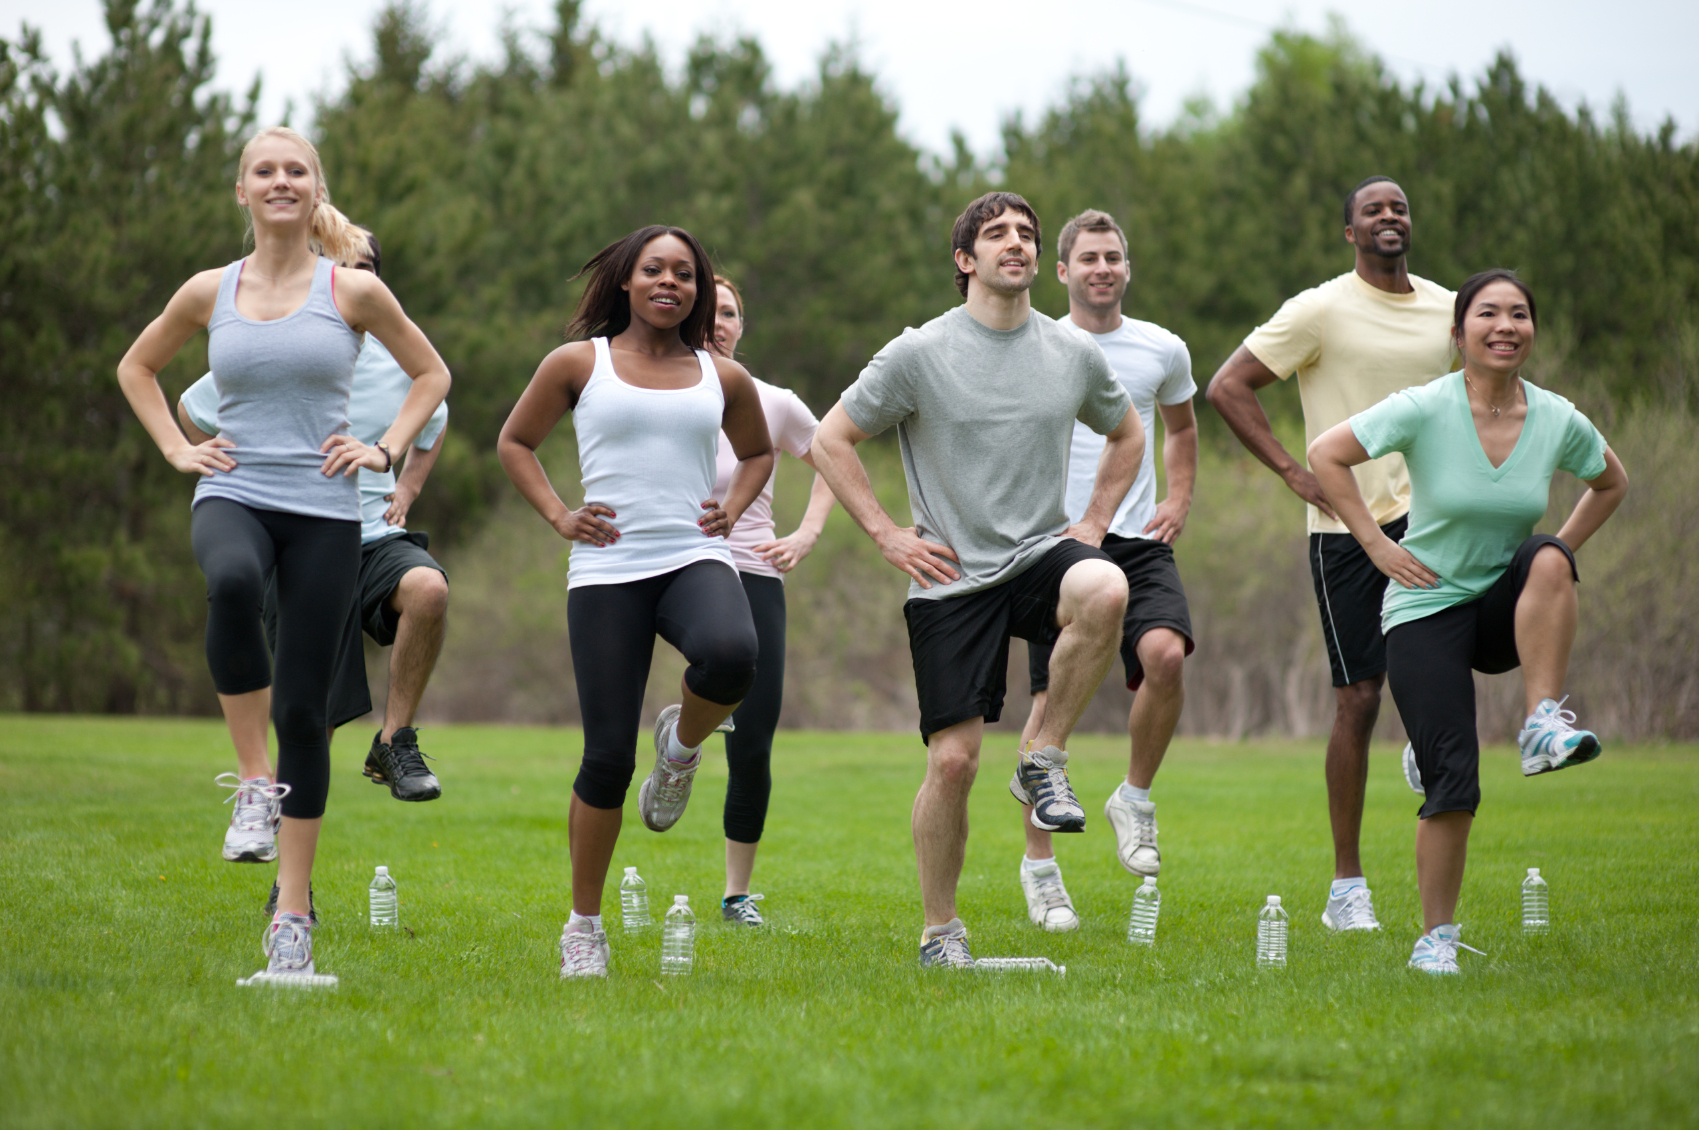 An outdoor fitness class in support of good health.